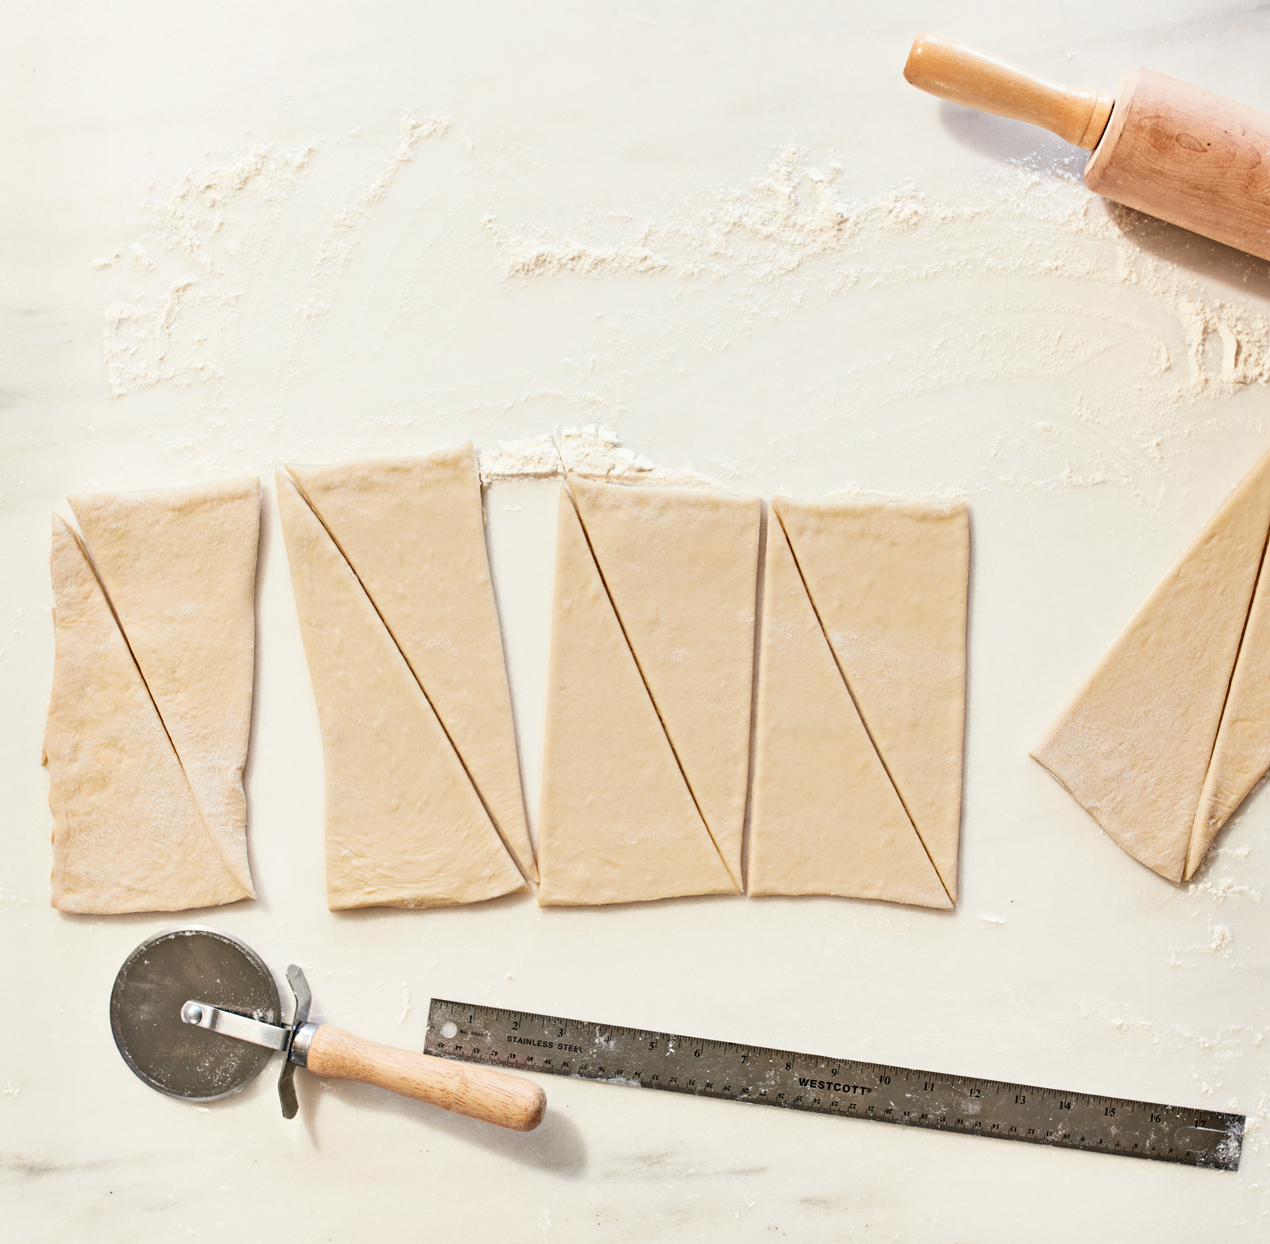 making triangles from croissant dough